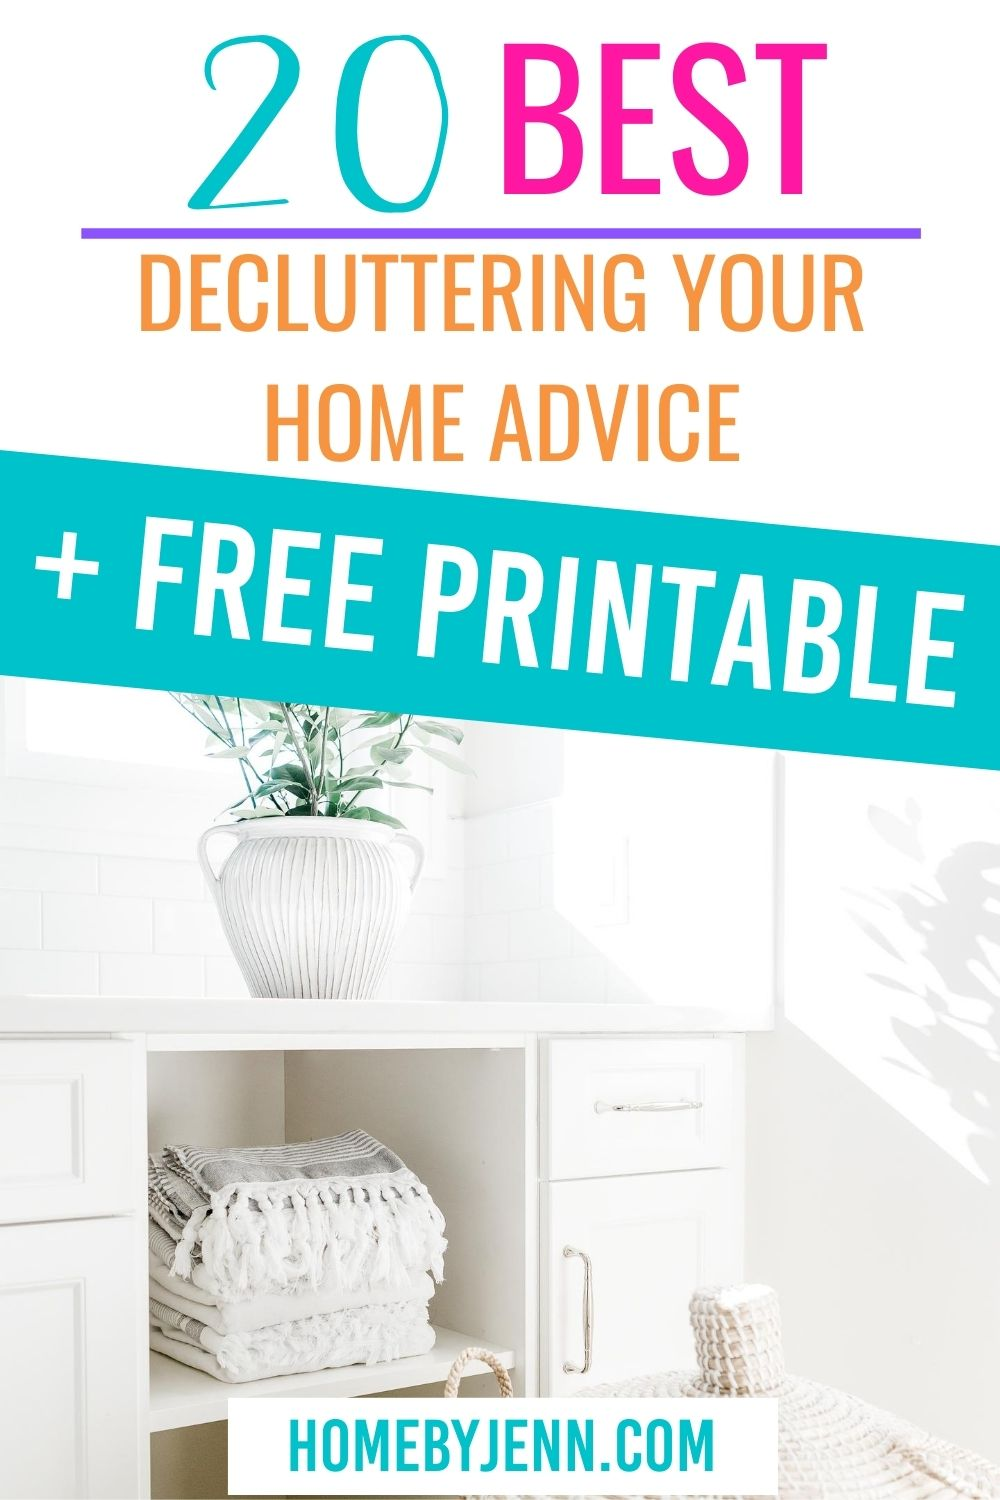 Clutter is hard to live with. Get the best decluttering advice out there to help you declutter your home. #cleanhome #declutter #organize #decluttingyourhome #declutteringchecklist via @homebyjenn